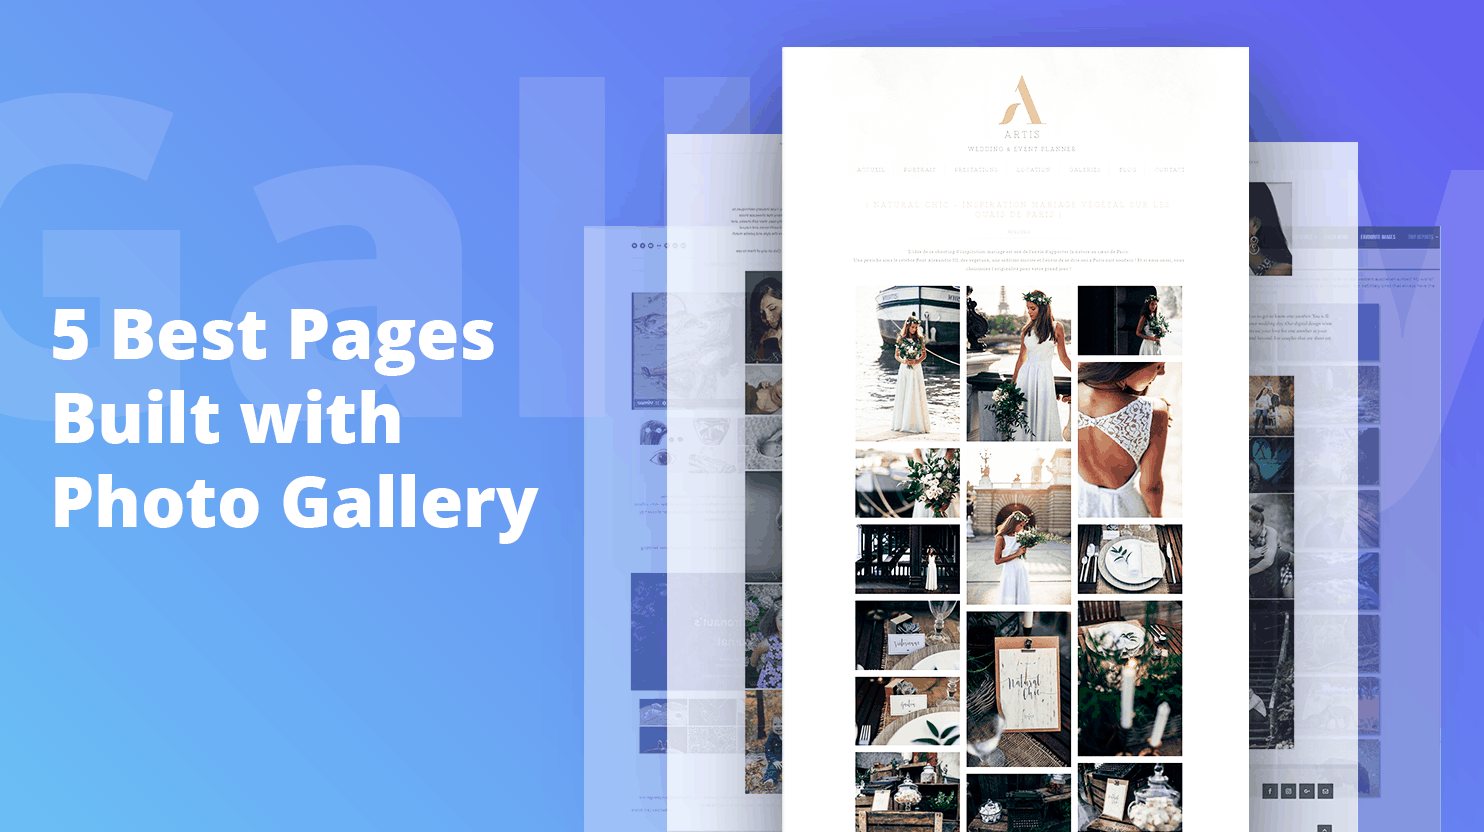 5 Best Pages Built with Photo Gallery